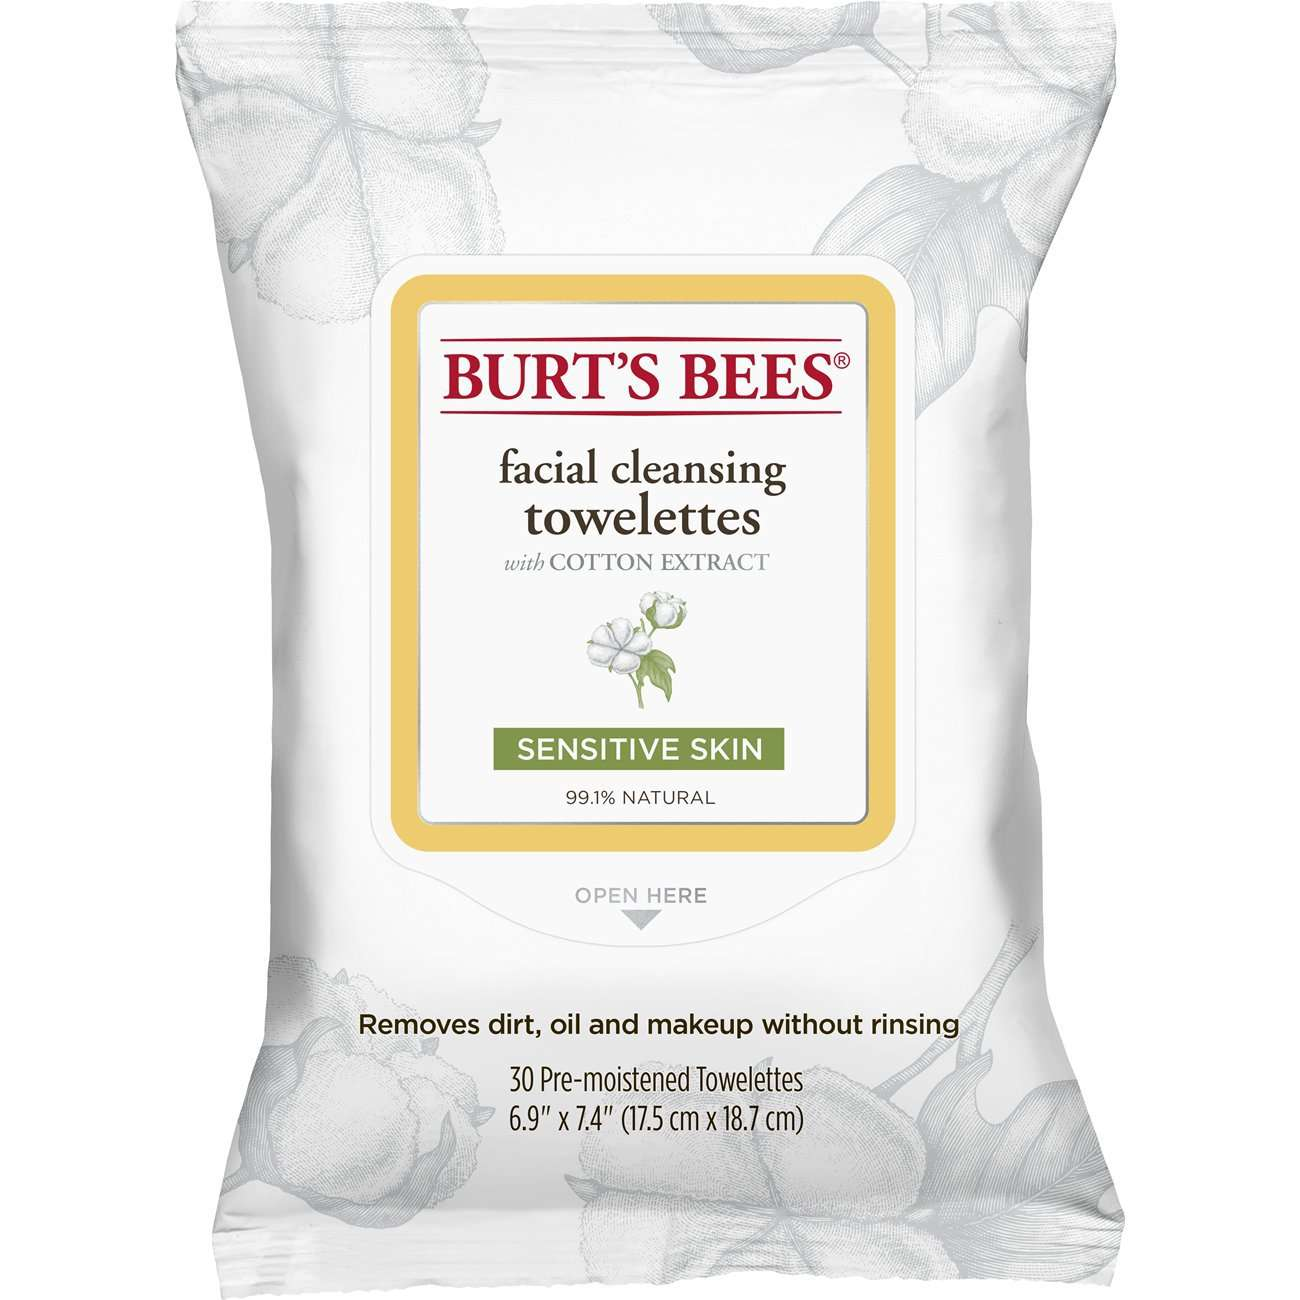 Burt's Bees Facial Cleansing Towelettes With Cotton Extract